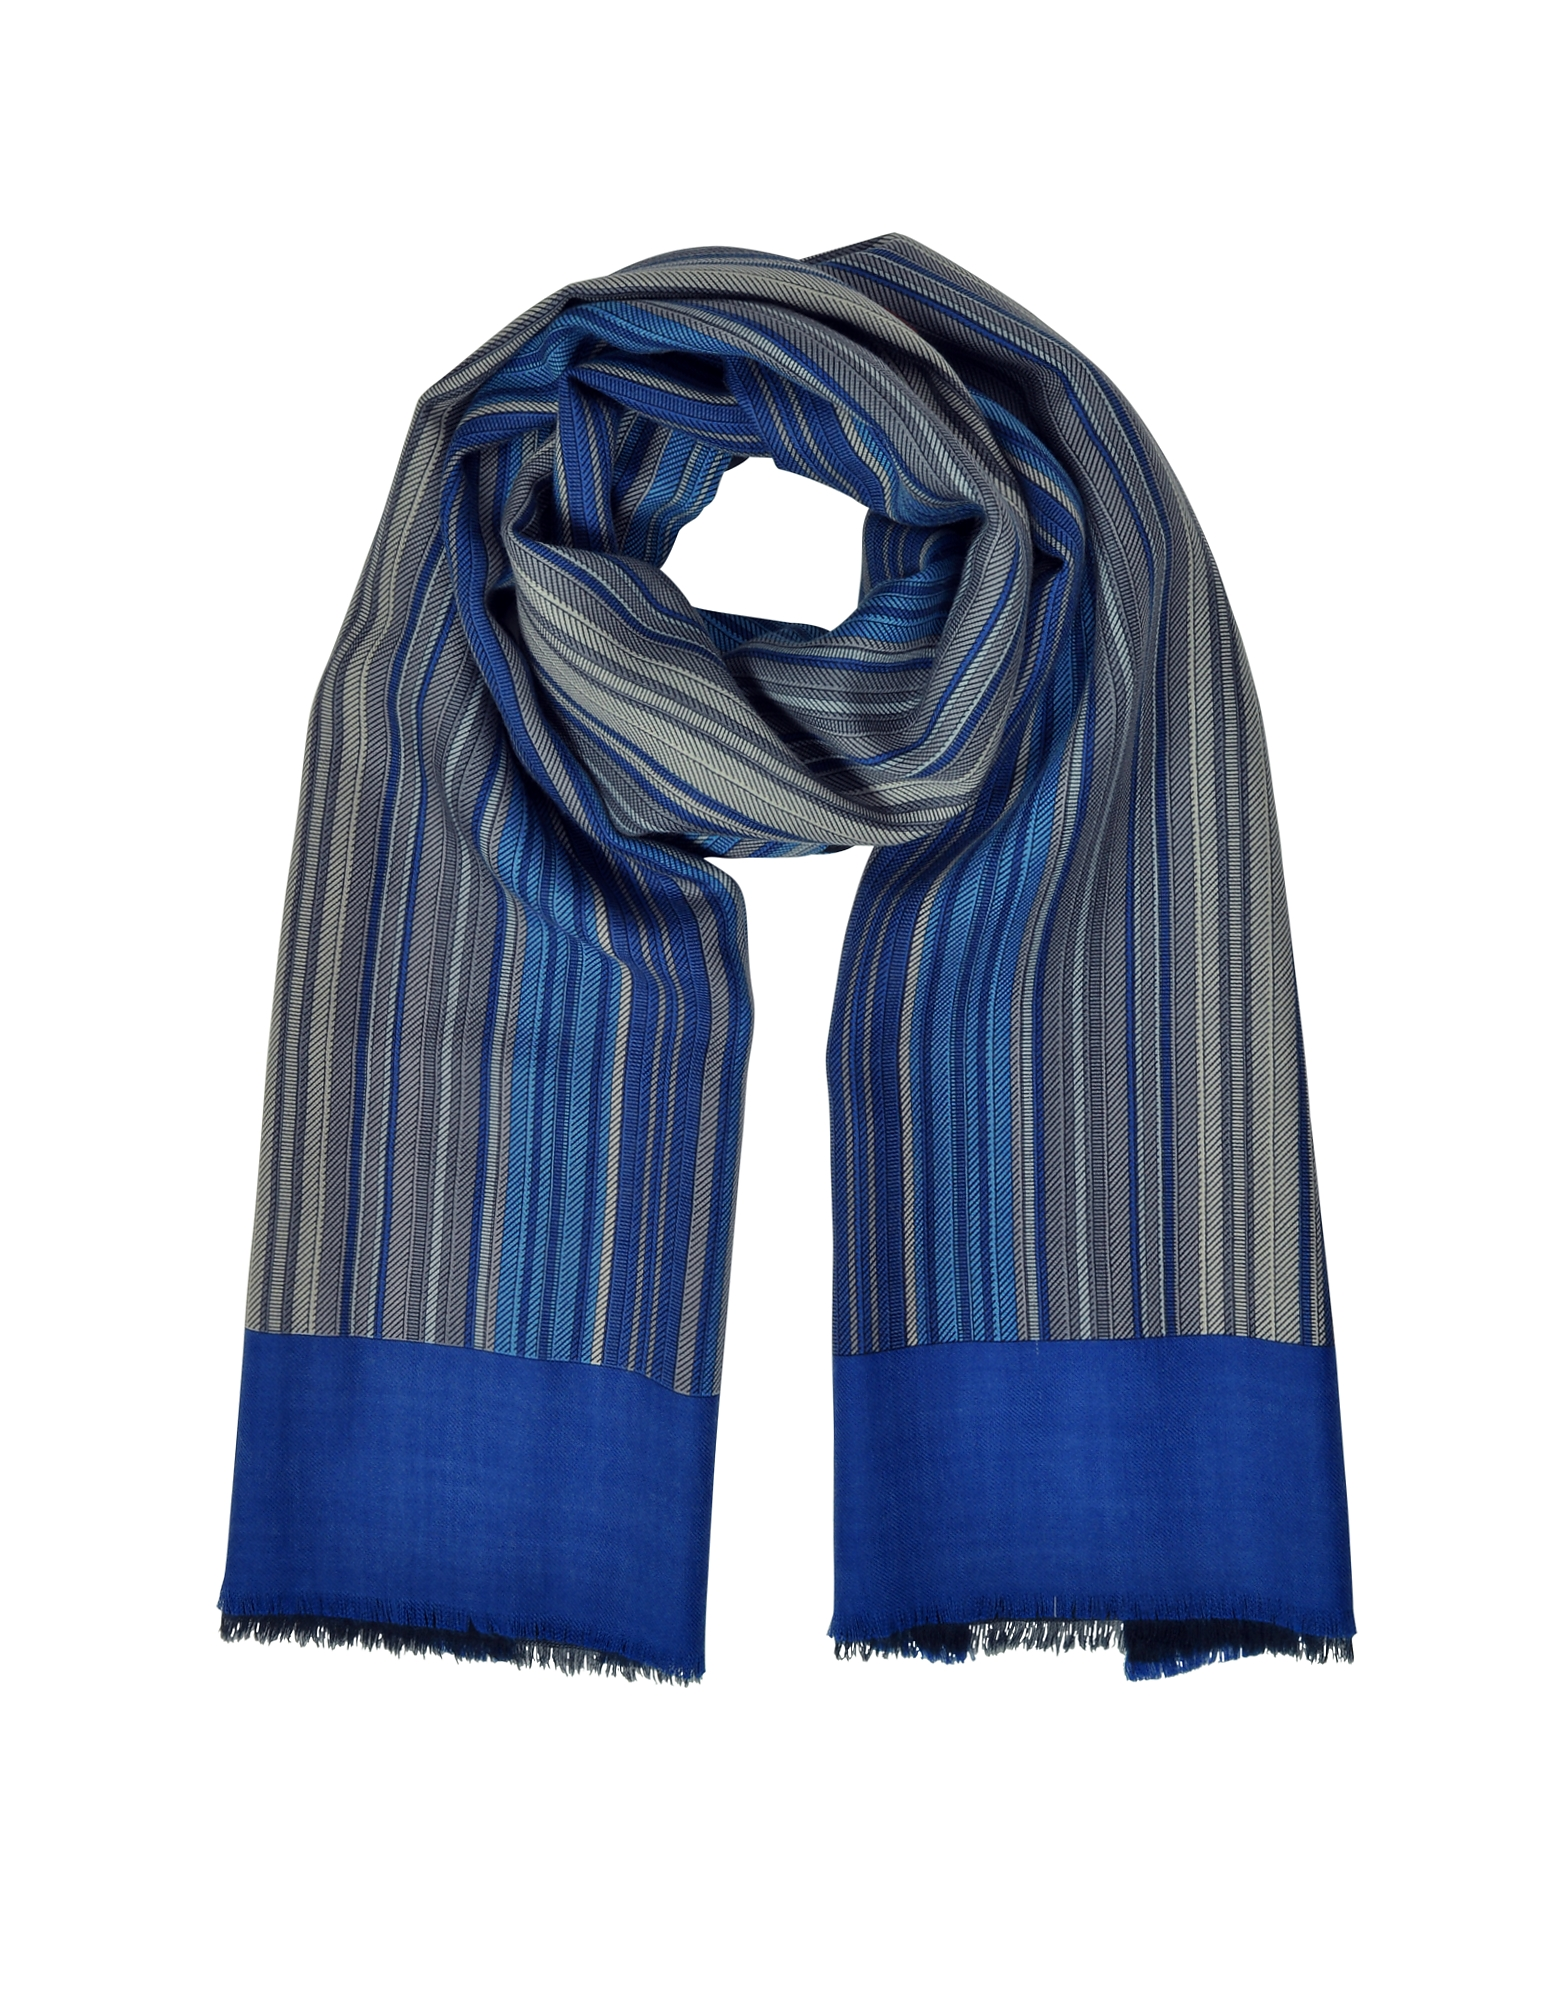 Image of Laura Biagiotti Designer Men's Scarves, Stripes Printed Wool, Silk and Cashmere Long Scarf